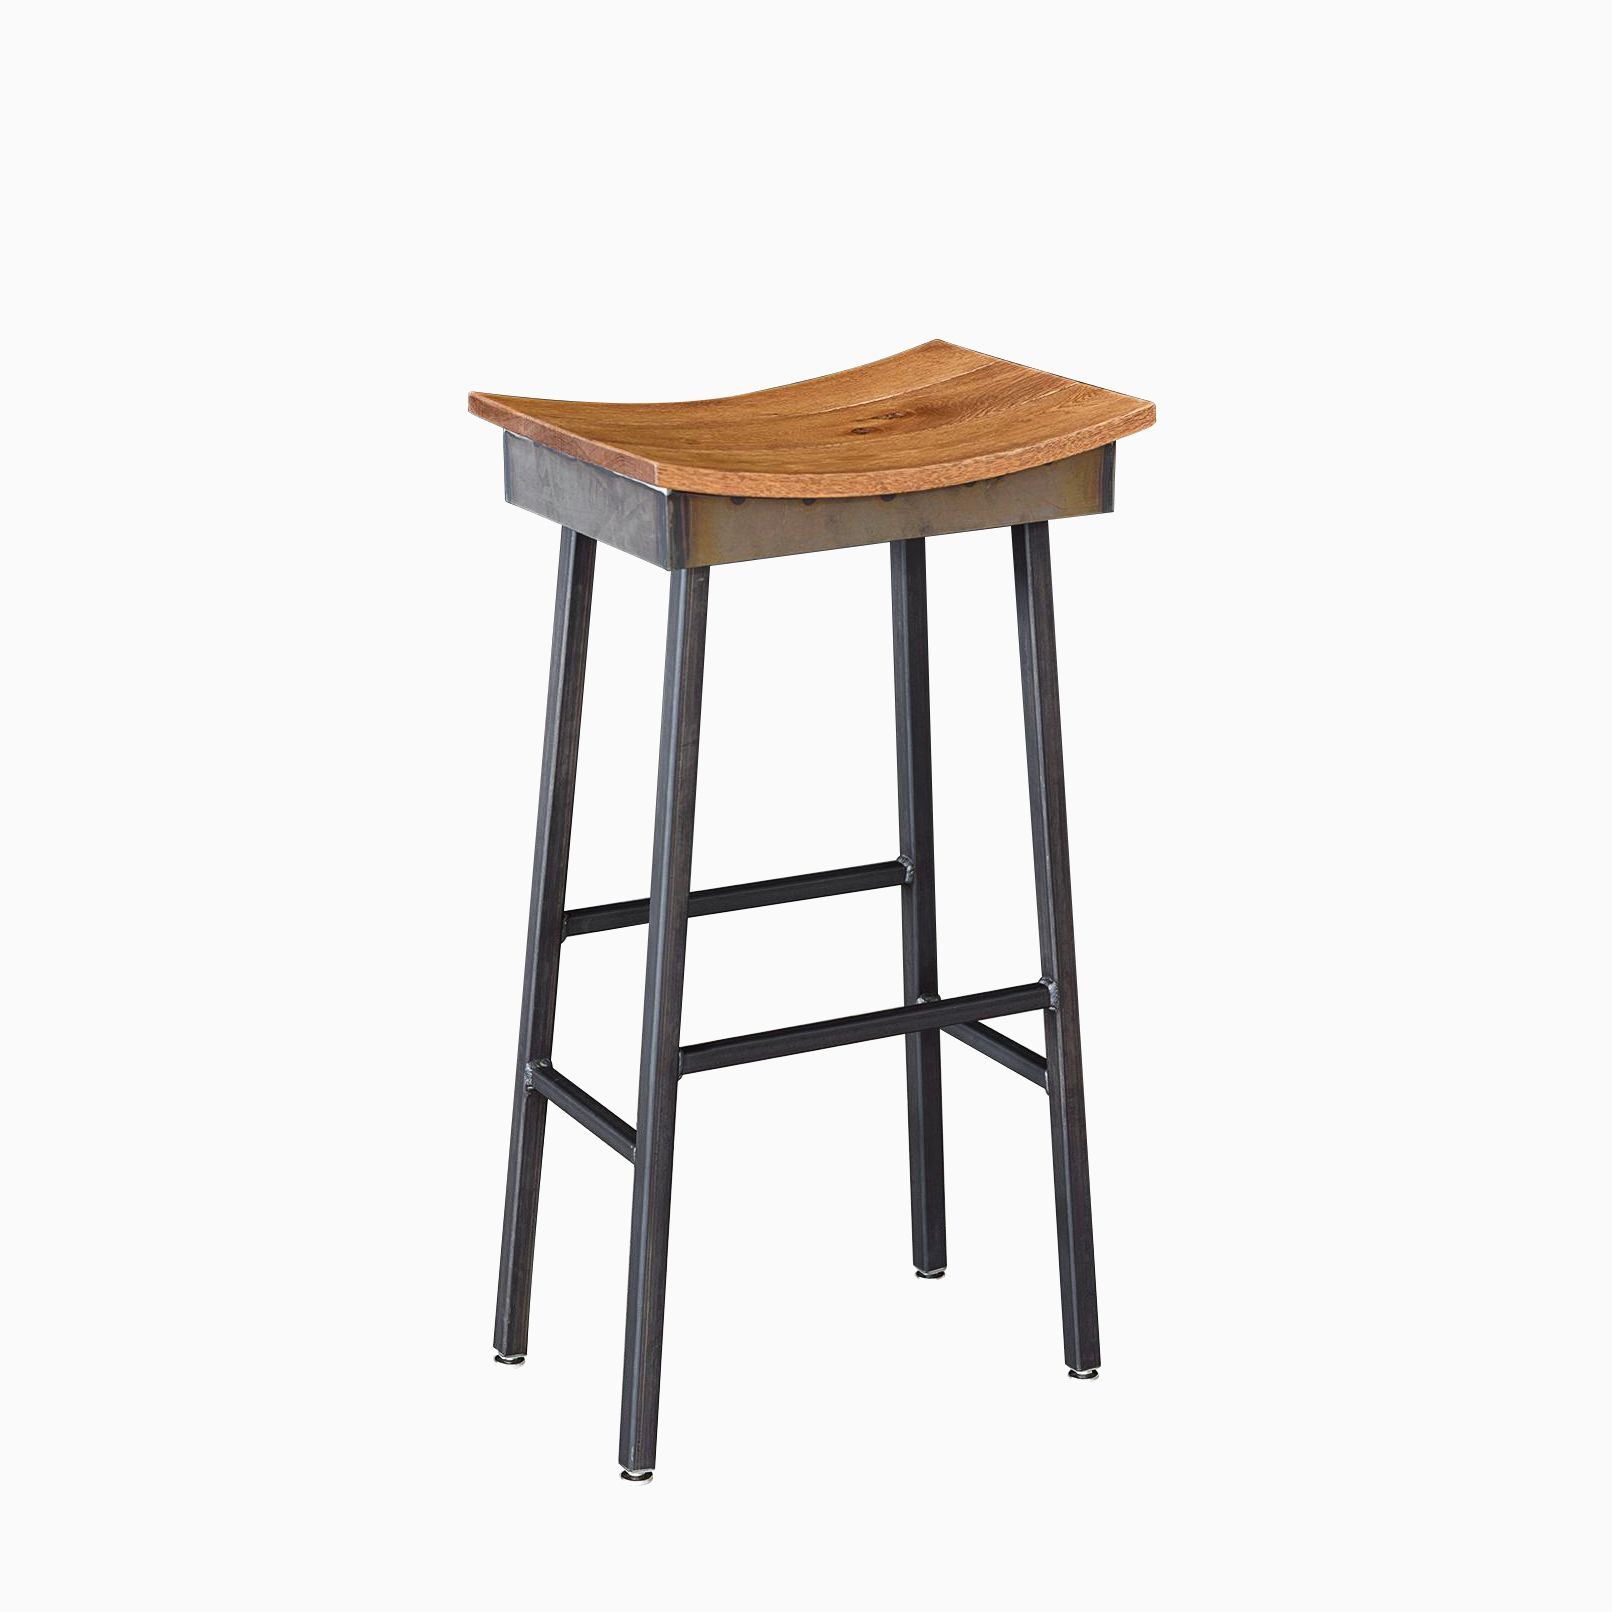 Custom Made Modern Saddle Stool